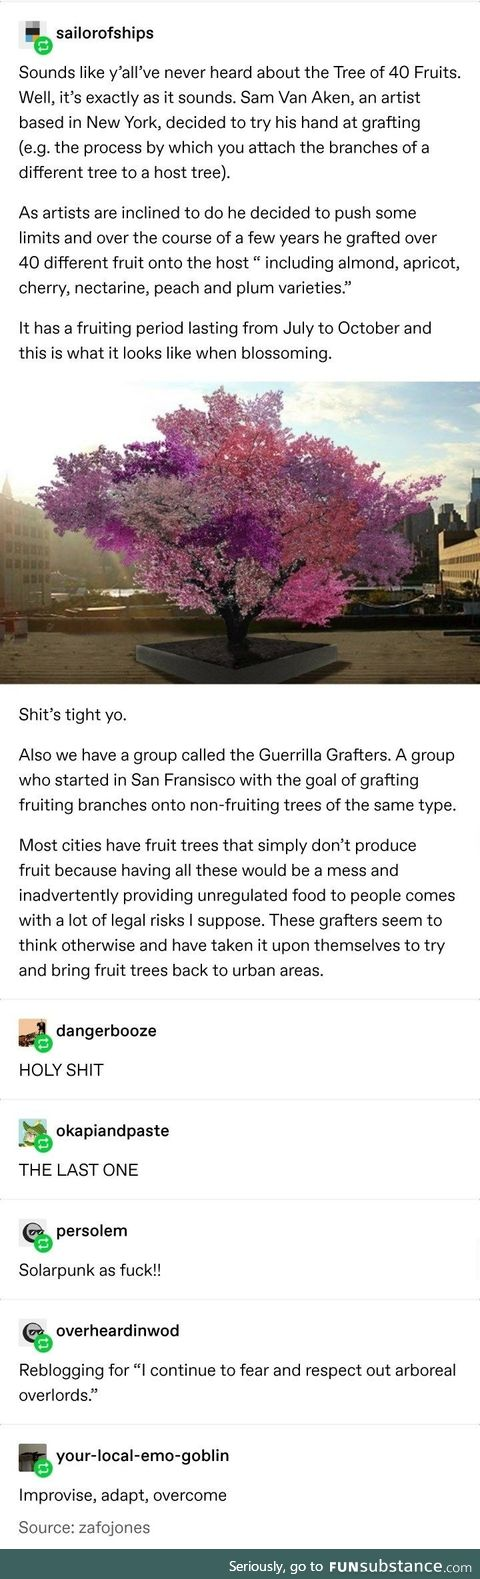 A Tree of 40 Stone Fruits